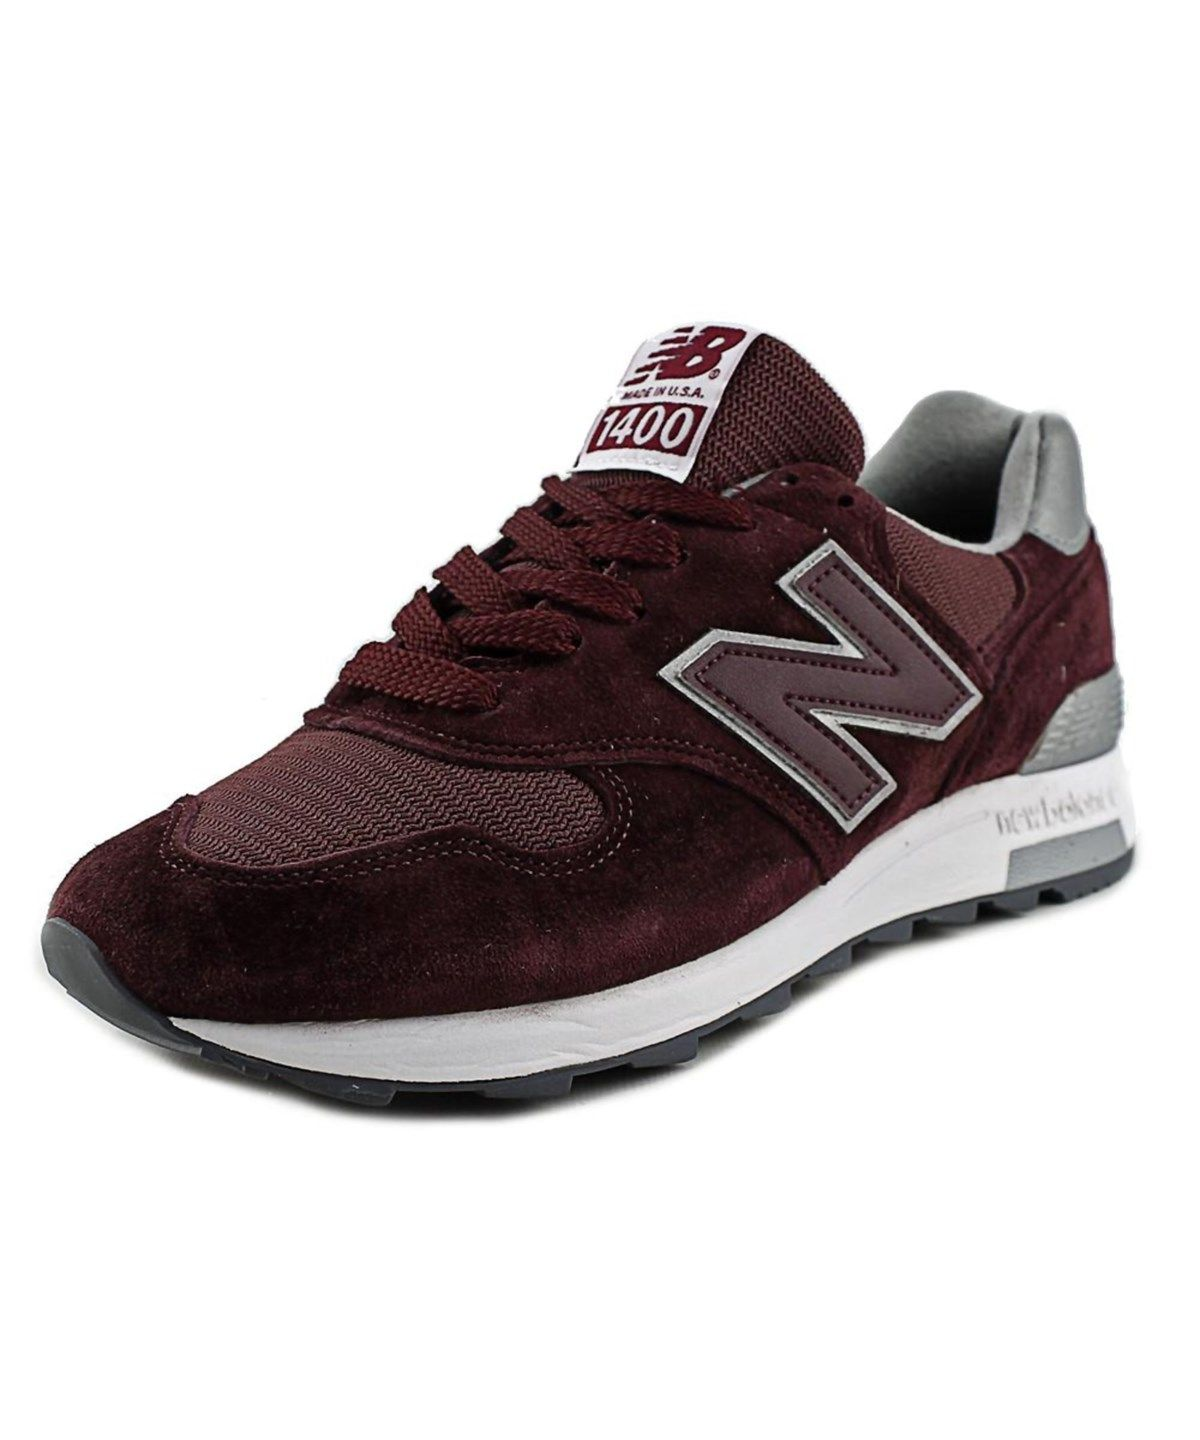 NEW BALANCE New Balance M1400 Men  Round Toe Synthetic  Sneakers'. #newbalance #shoes #sneakers